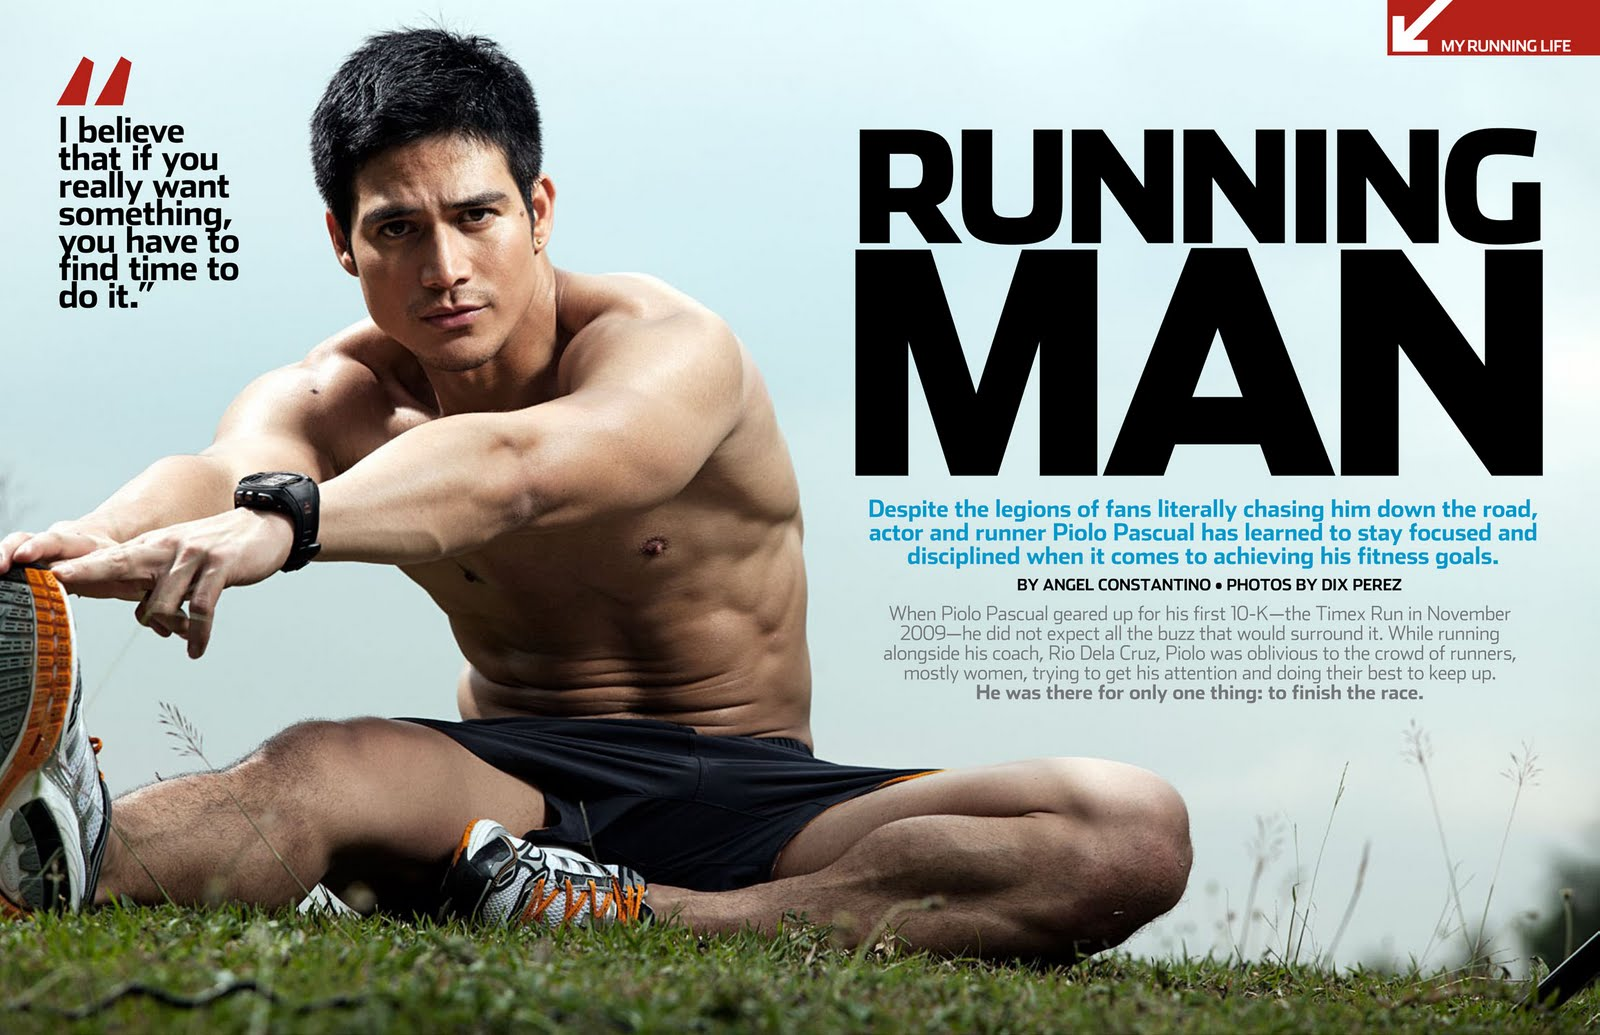 piolo+cover+story+lores.jpg